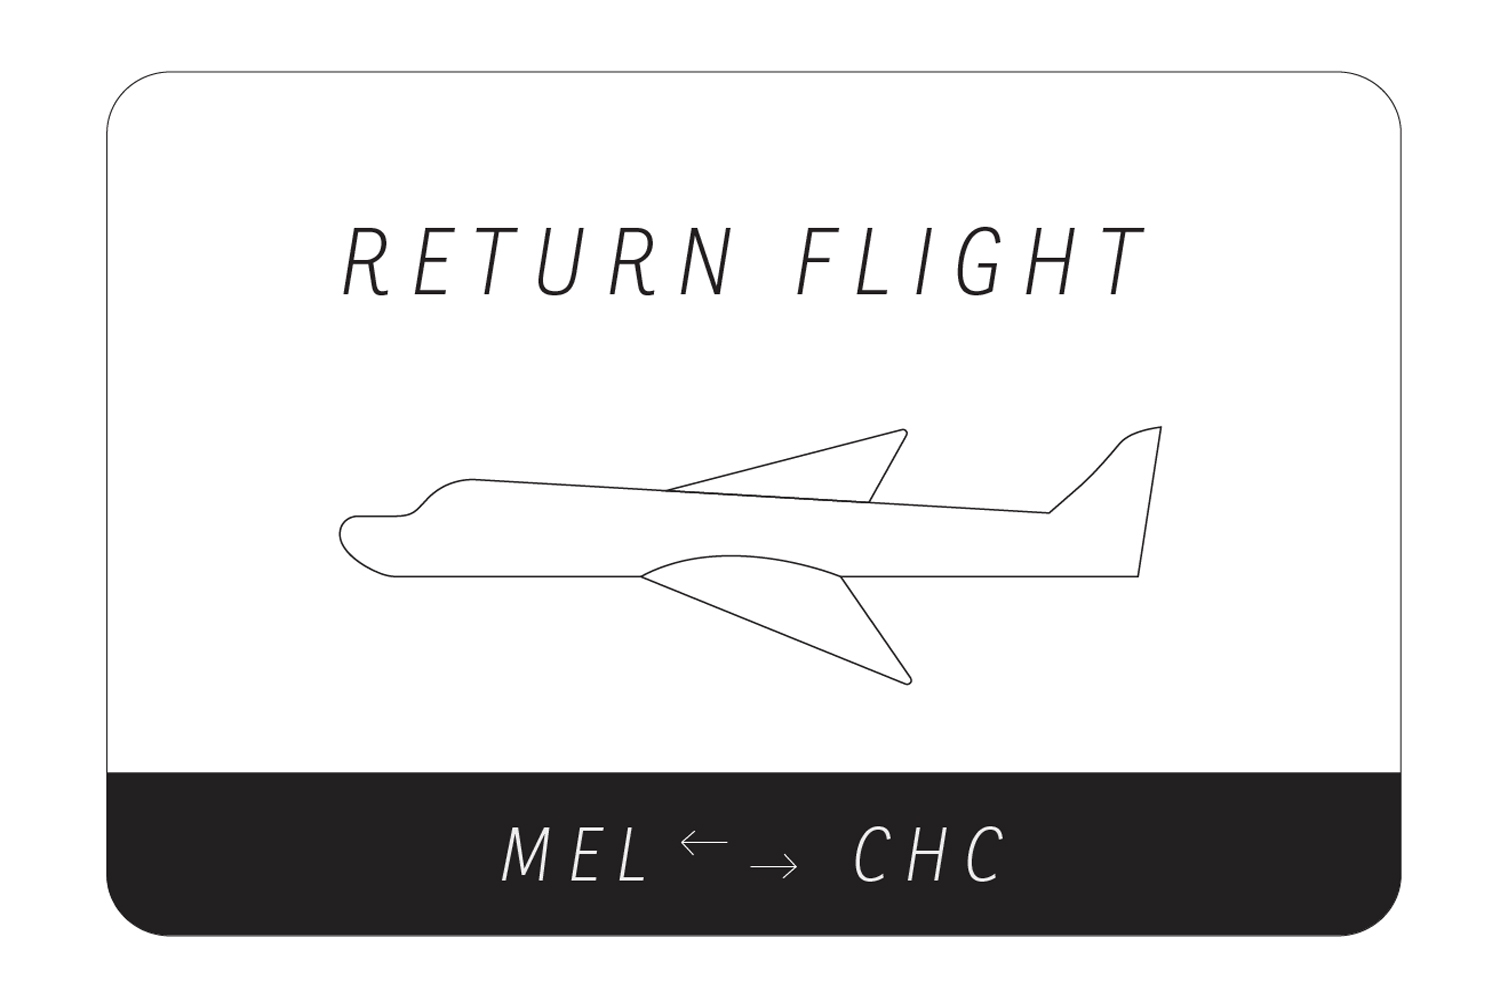 RETURN FLIGHT MEL>CHC | Curated by Elizaveta Maltseva image